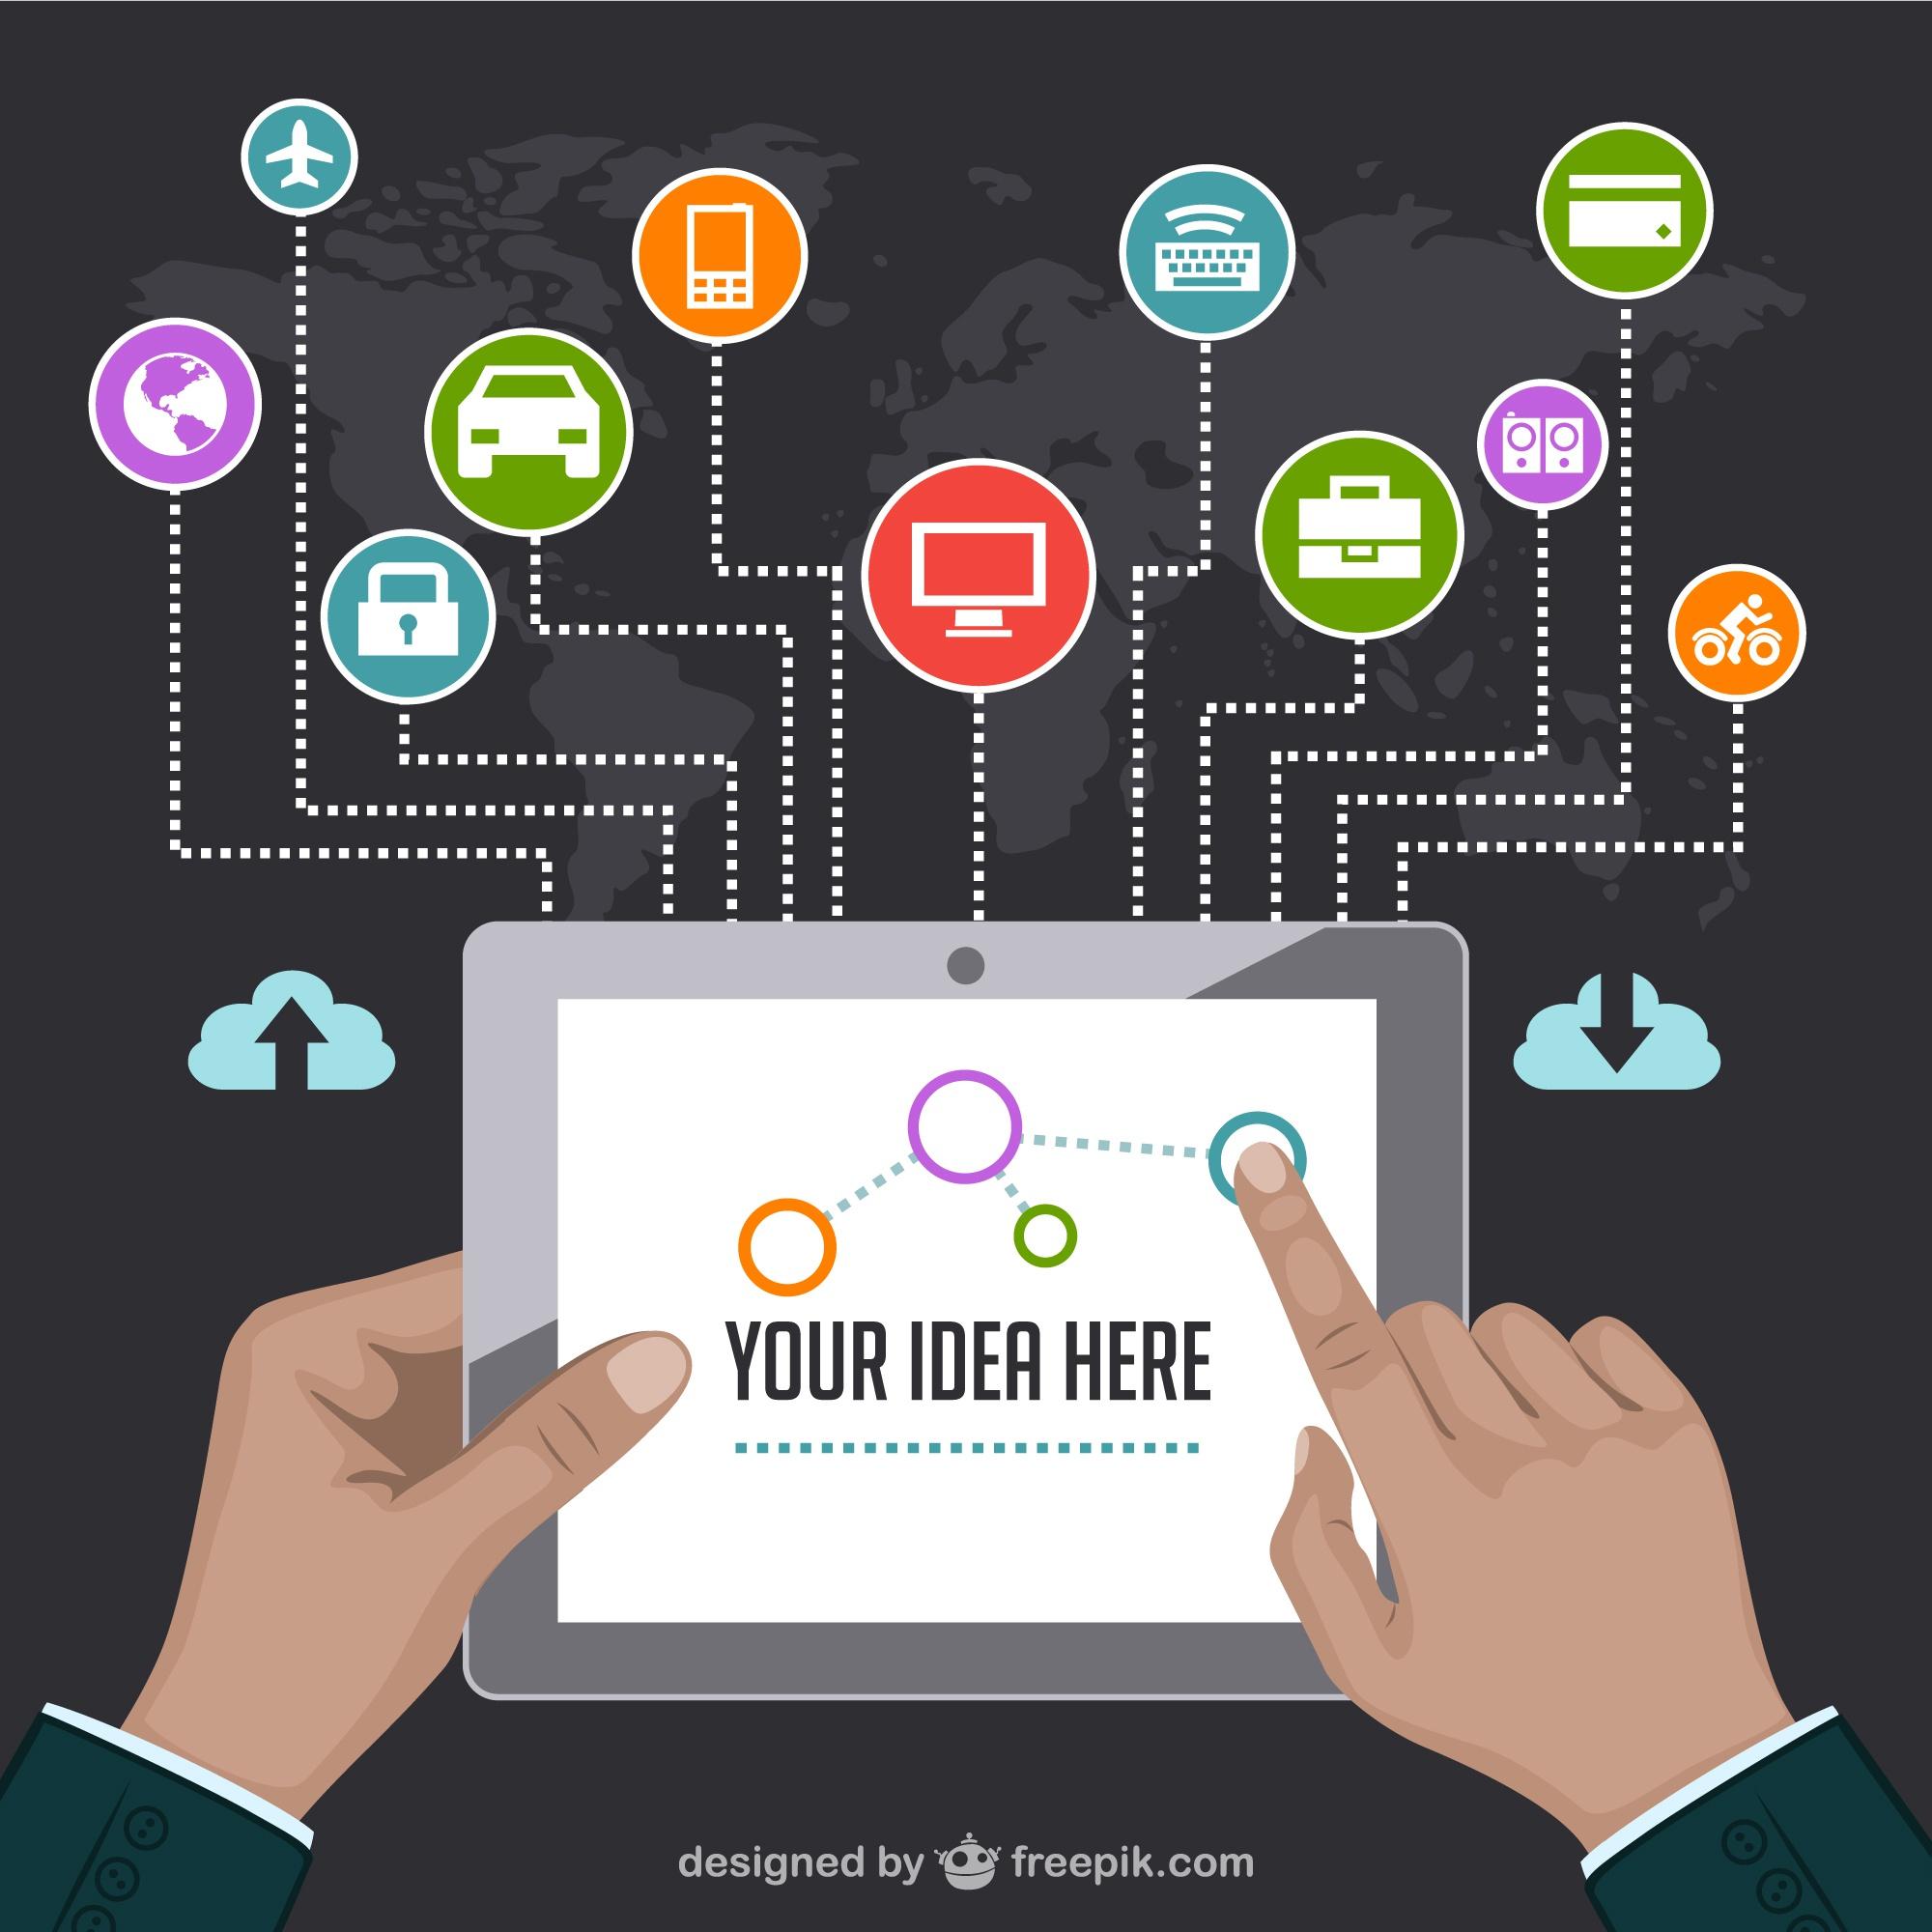 Idea infographic with a tablet and business application